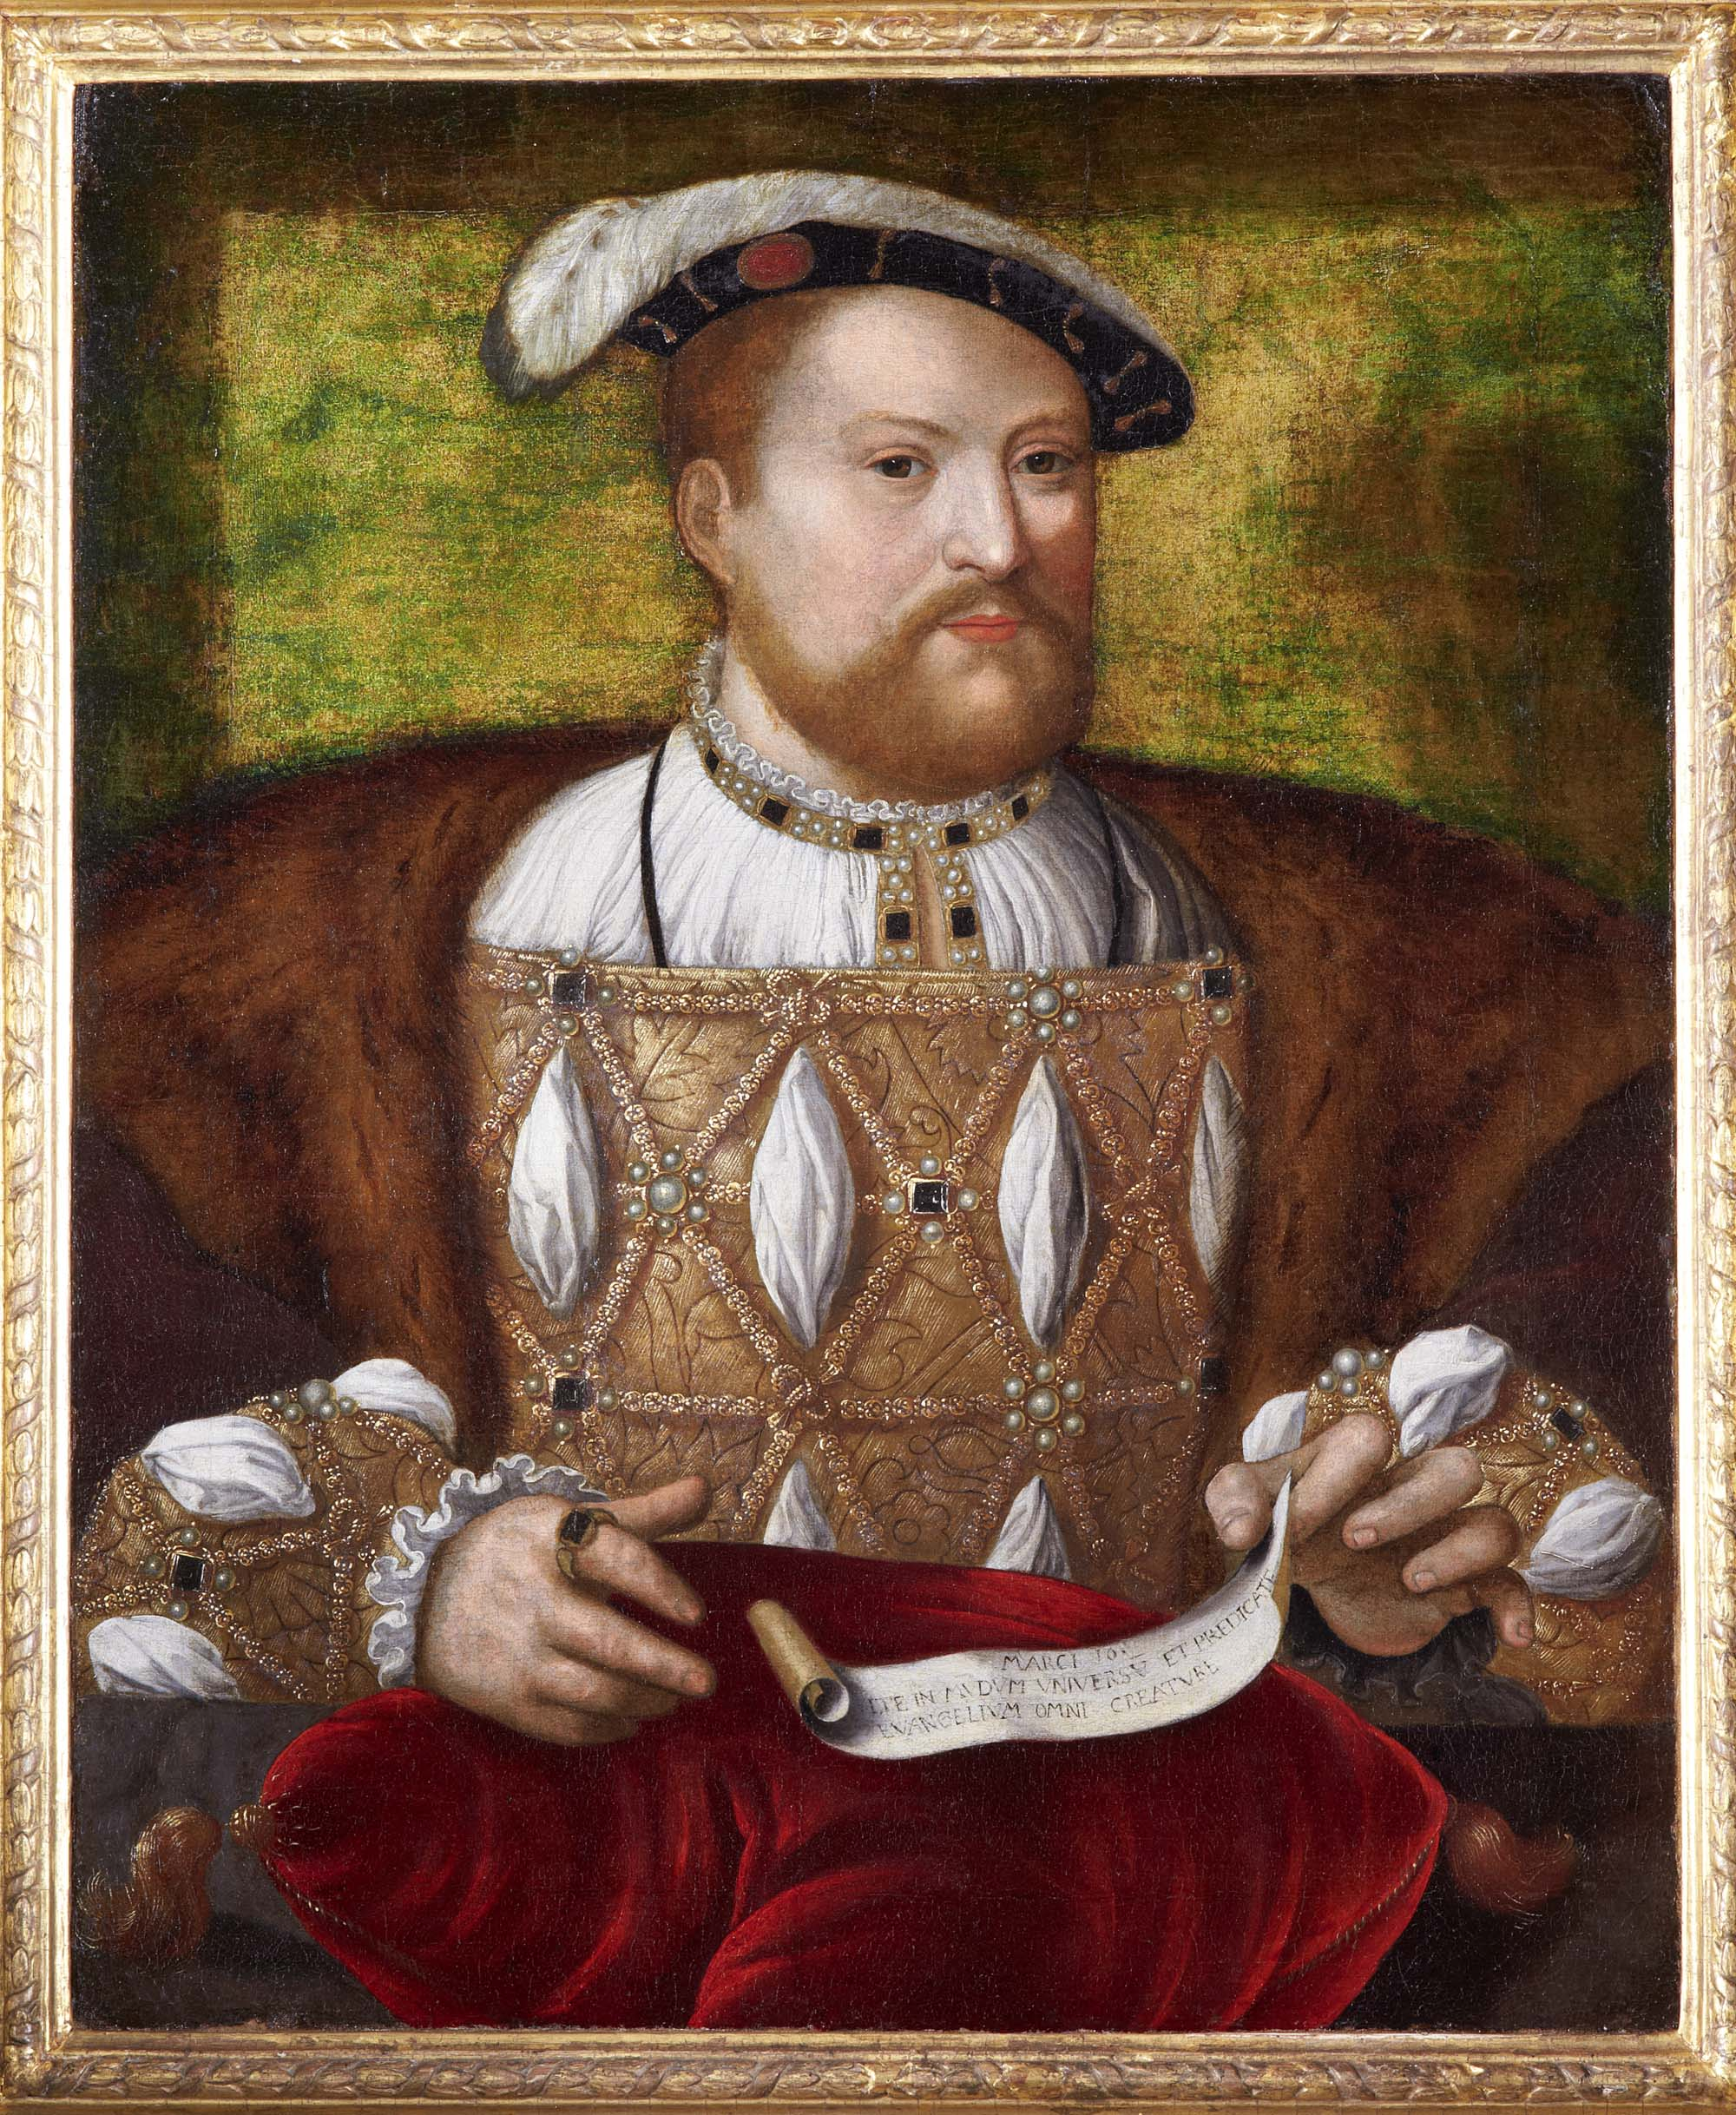 a portrait of a Henry VII in customary robes and black felt hat with feather